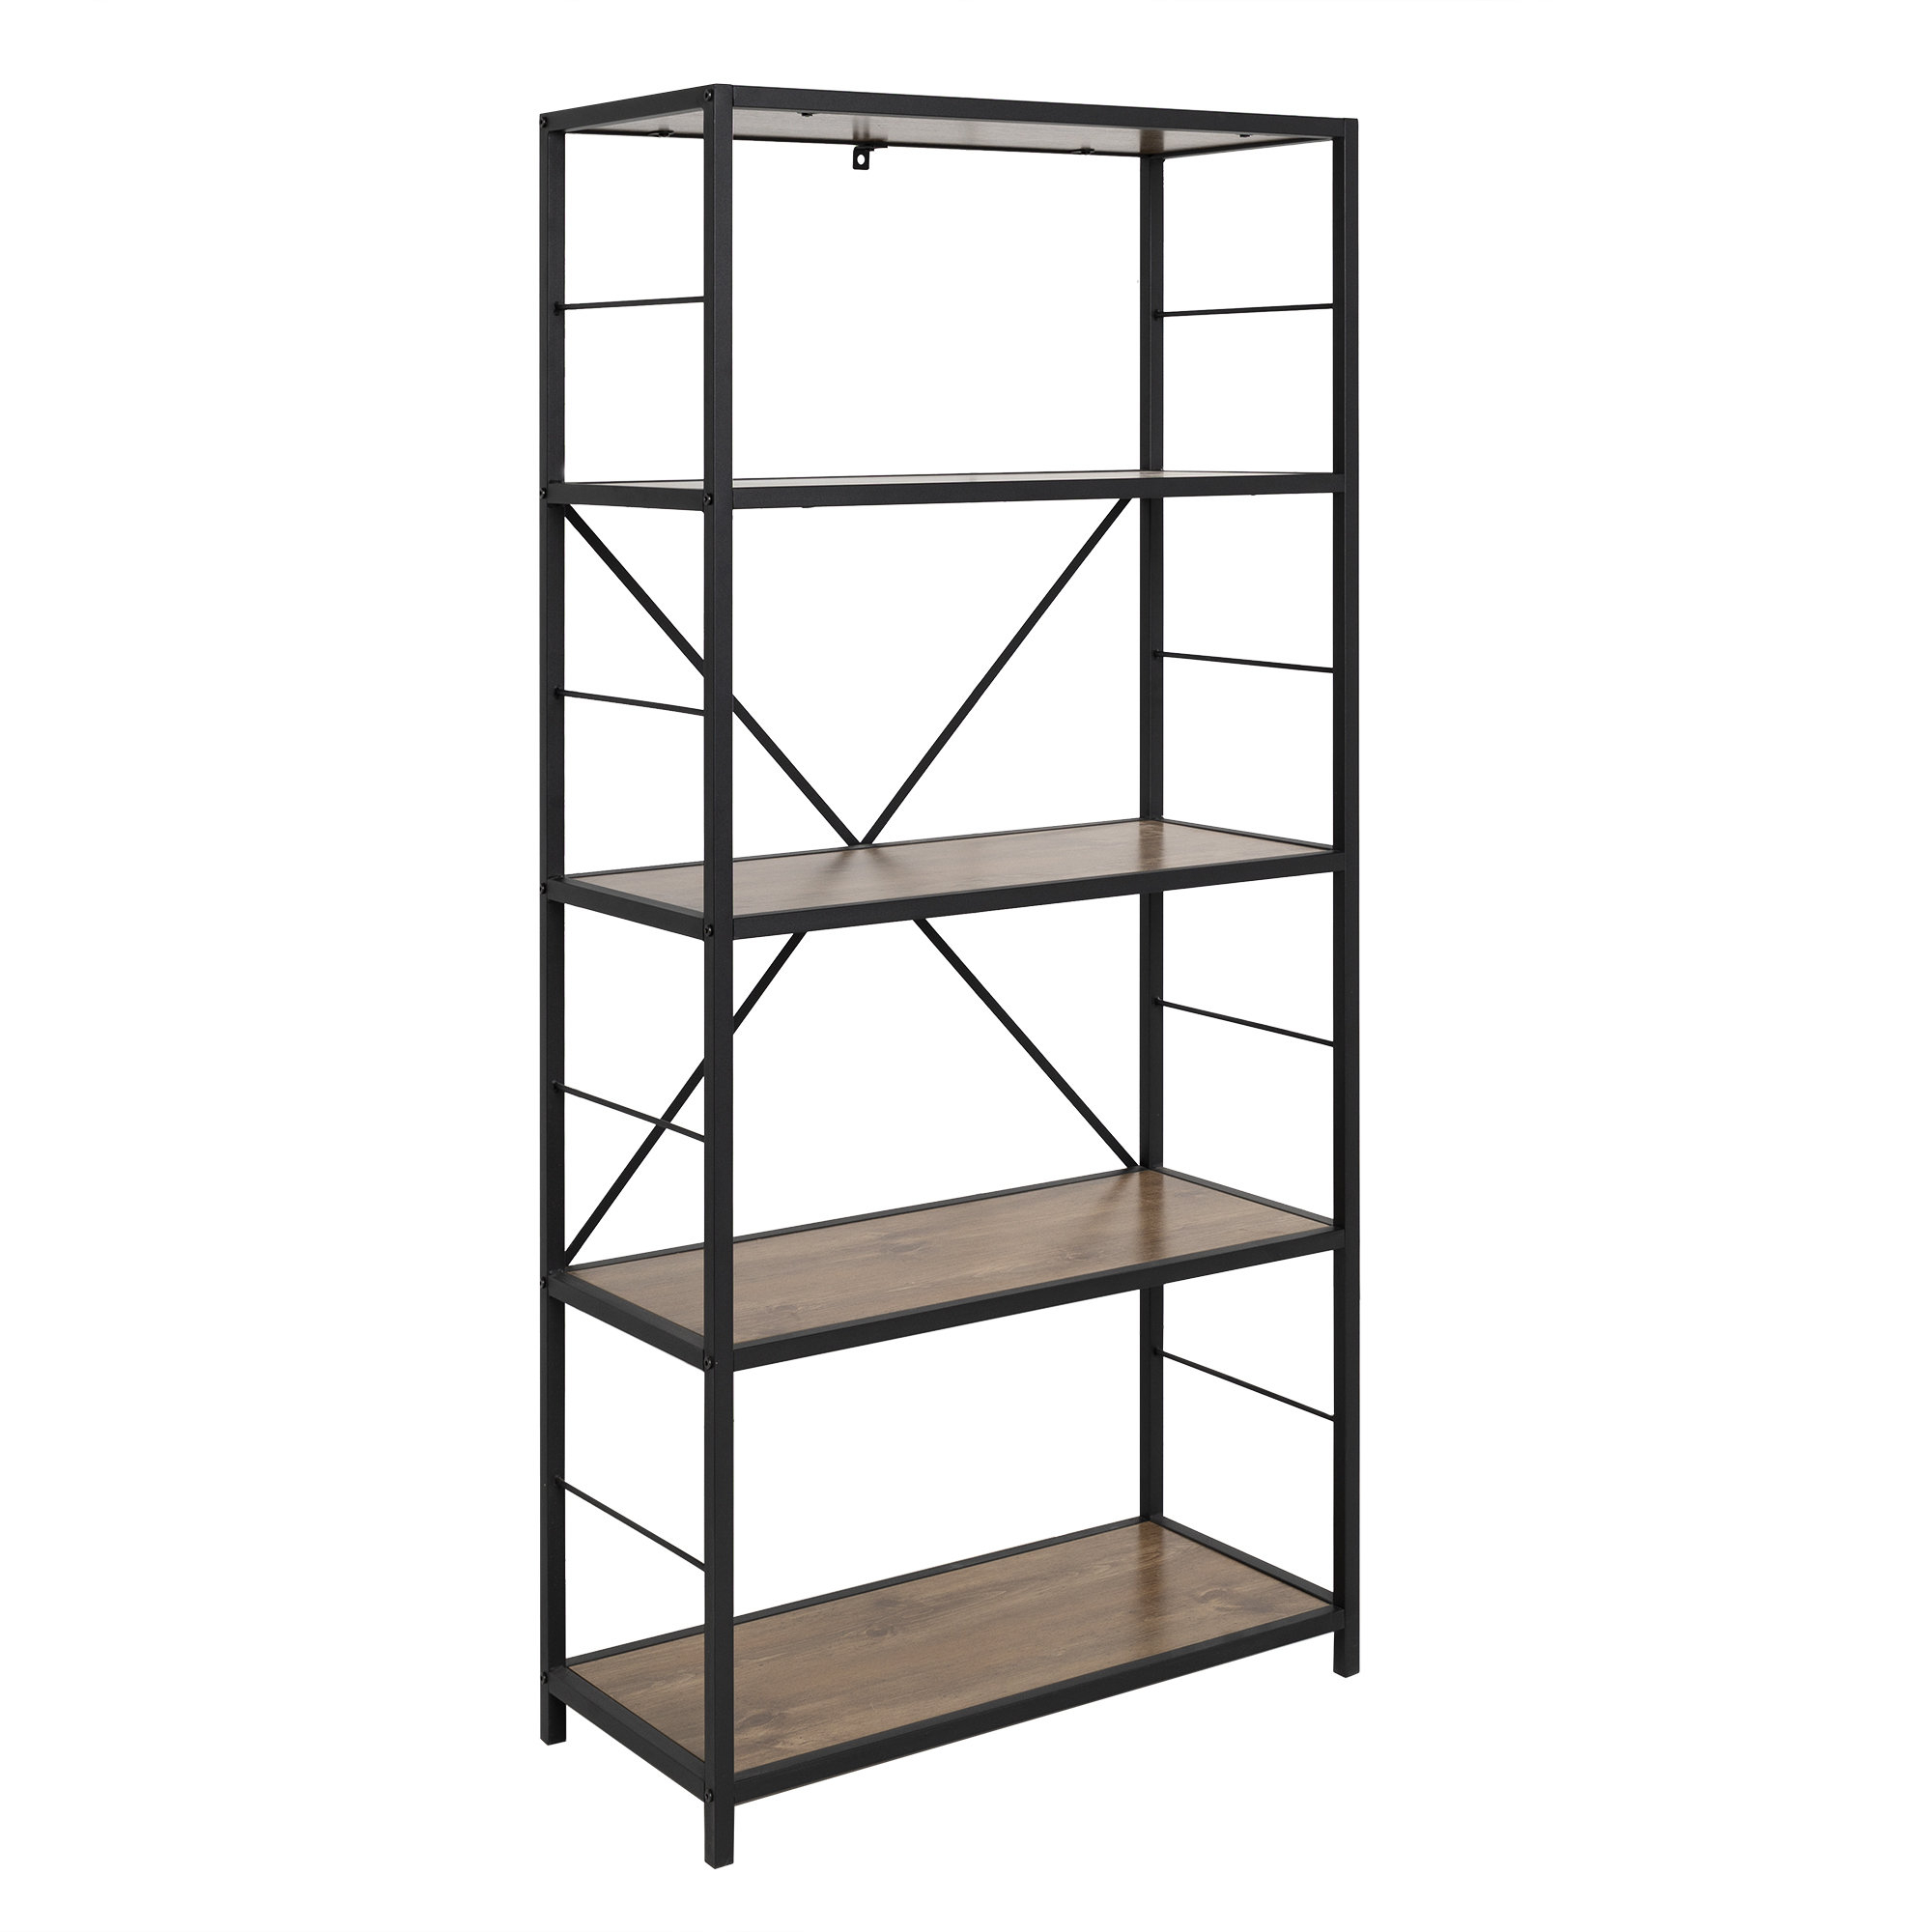 Macon Etagere Bookcase With Regard To Most Recent Macon Etagere Bookcases (View 13 of 20)